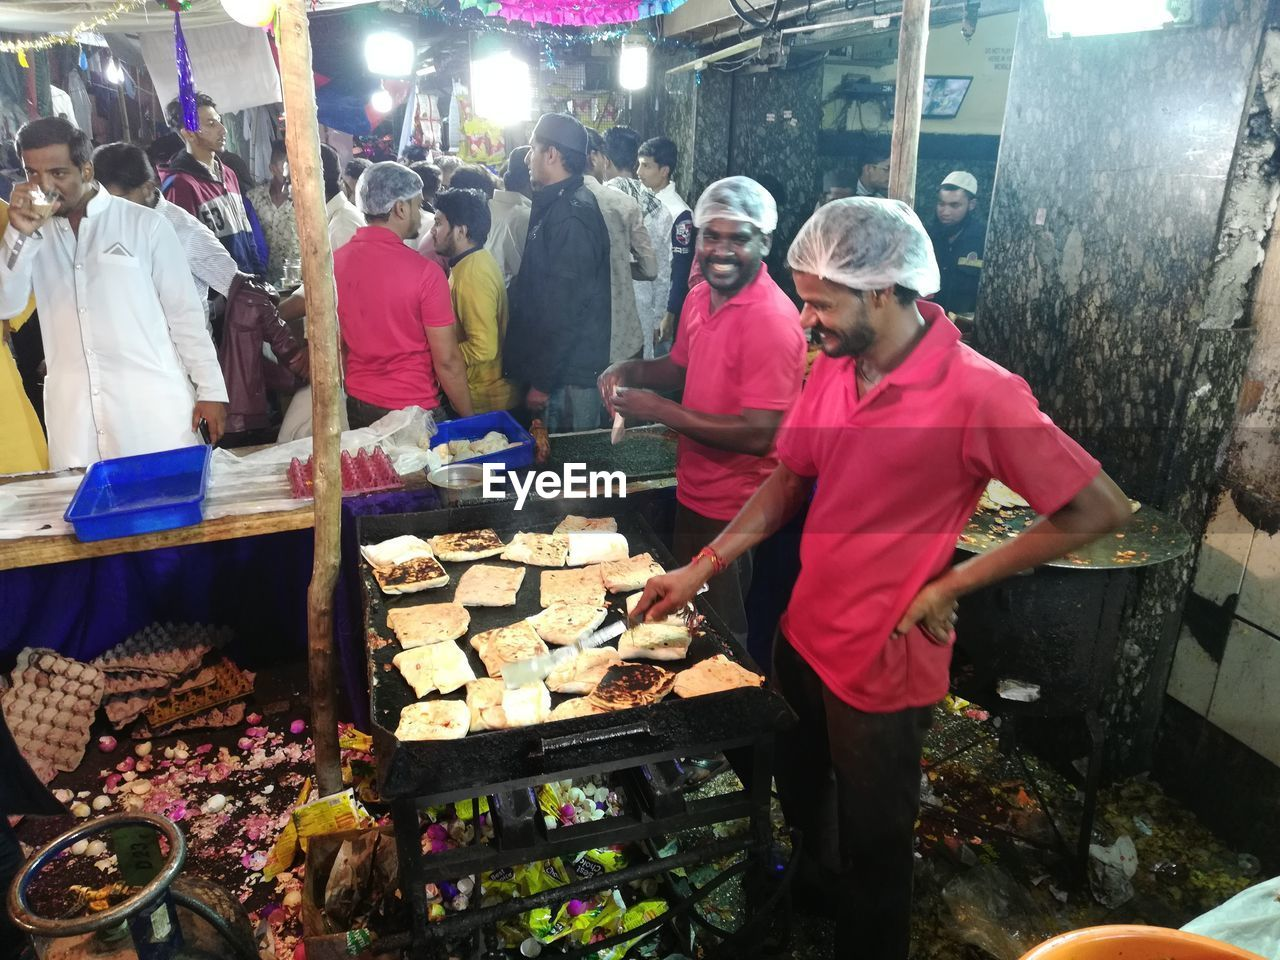 food, group of people, men, real people, food and drink, preparing food, market, occupation, people, preparation, adult, meat, standing, night, women, freshness, market stall, retail, business, lifestyles, outdoors, buying, chef